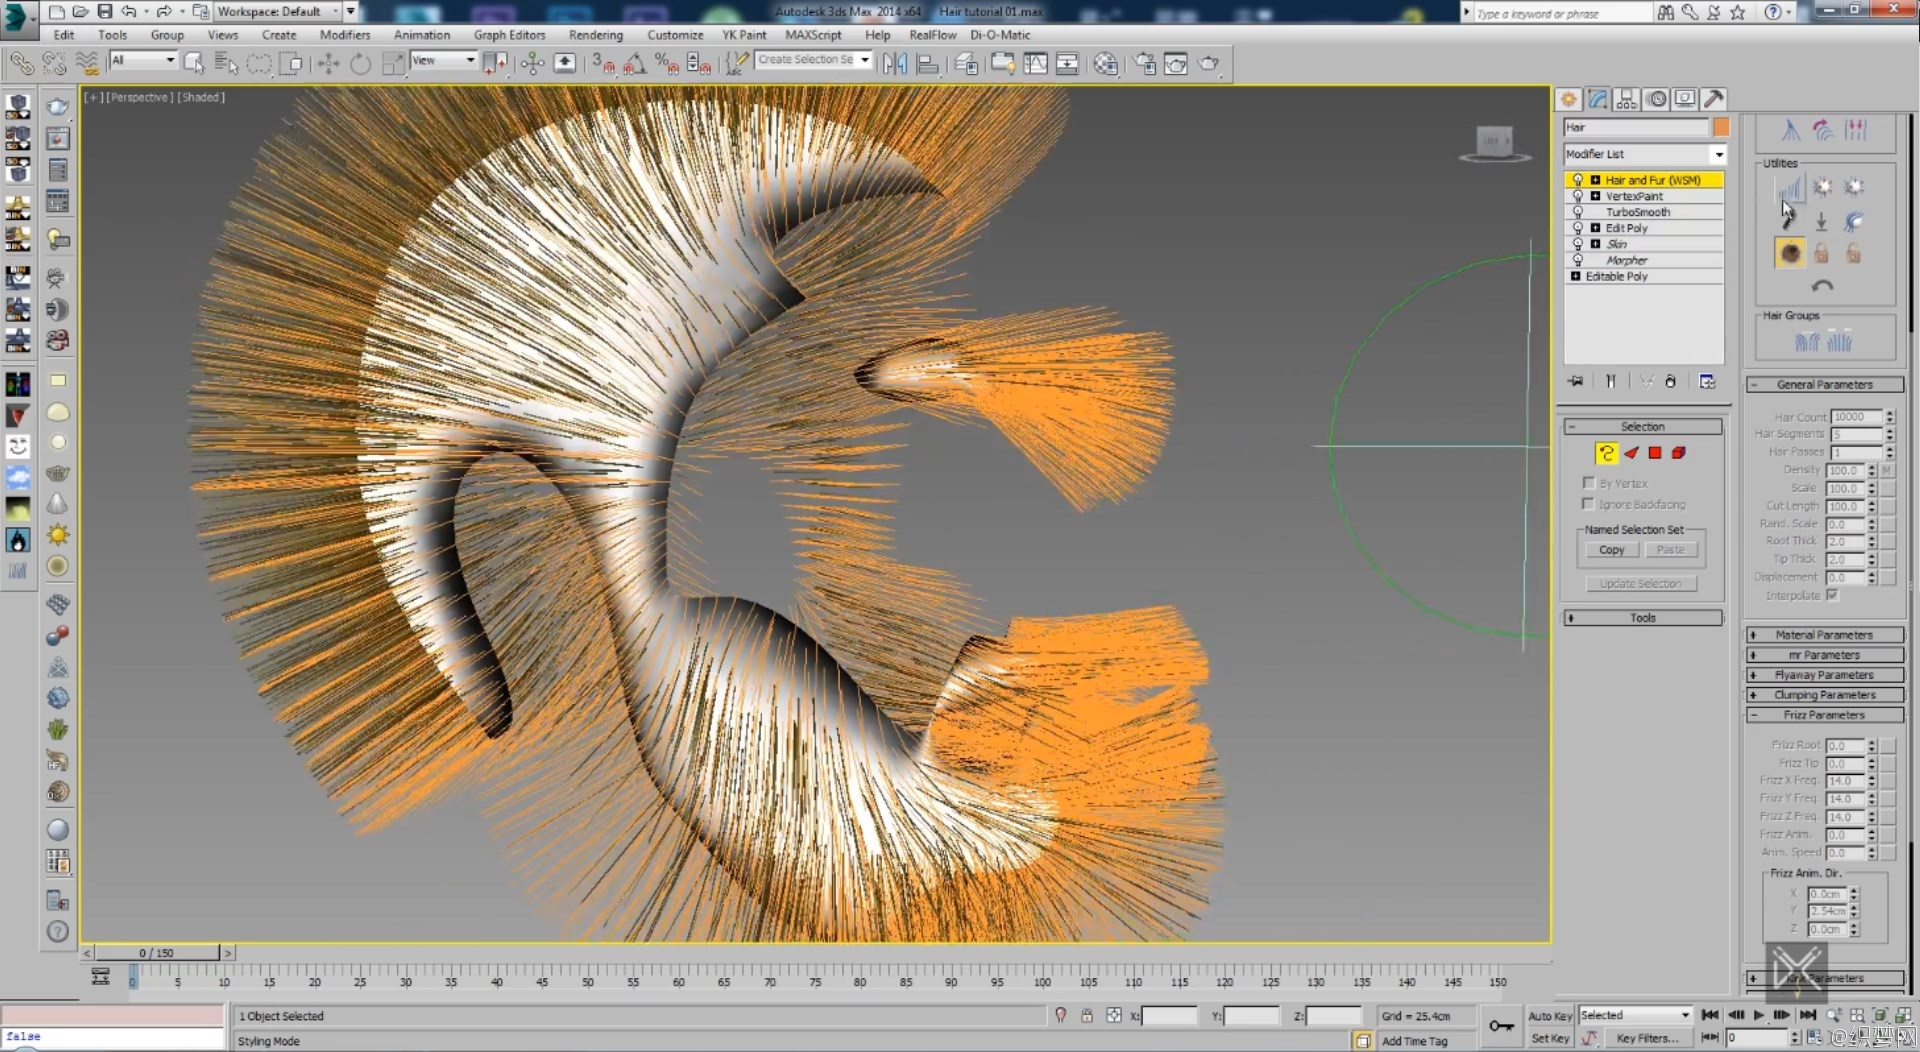 3ds max制作头发和胡须毛发视频教程 - 3ds max Hair Tutorial without Plugins